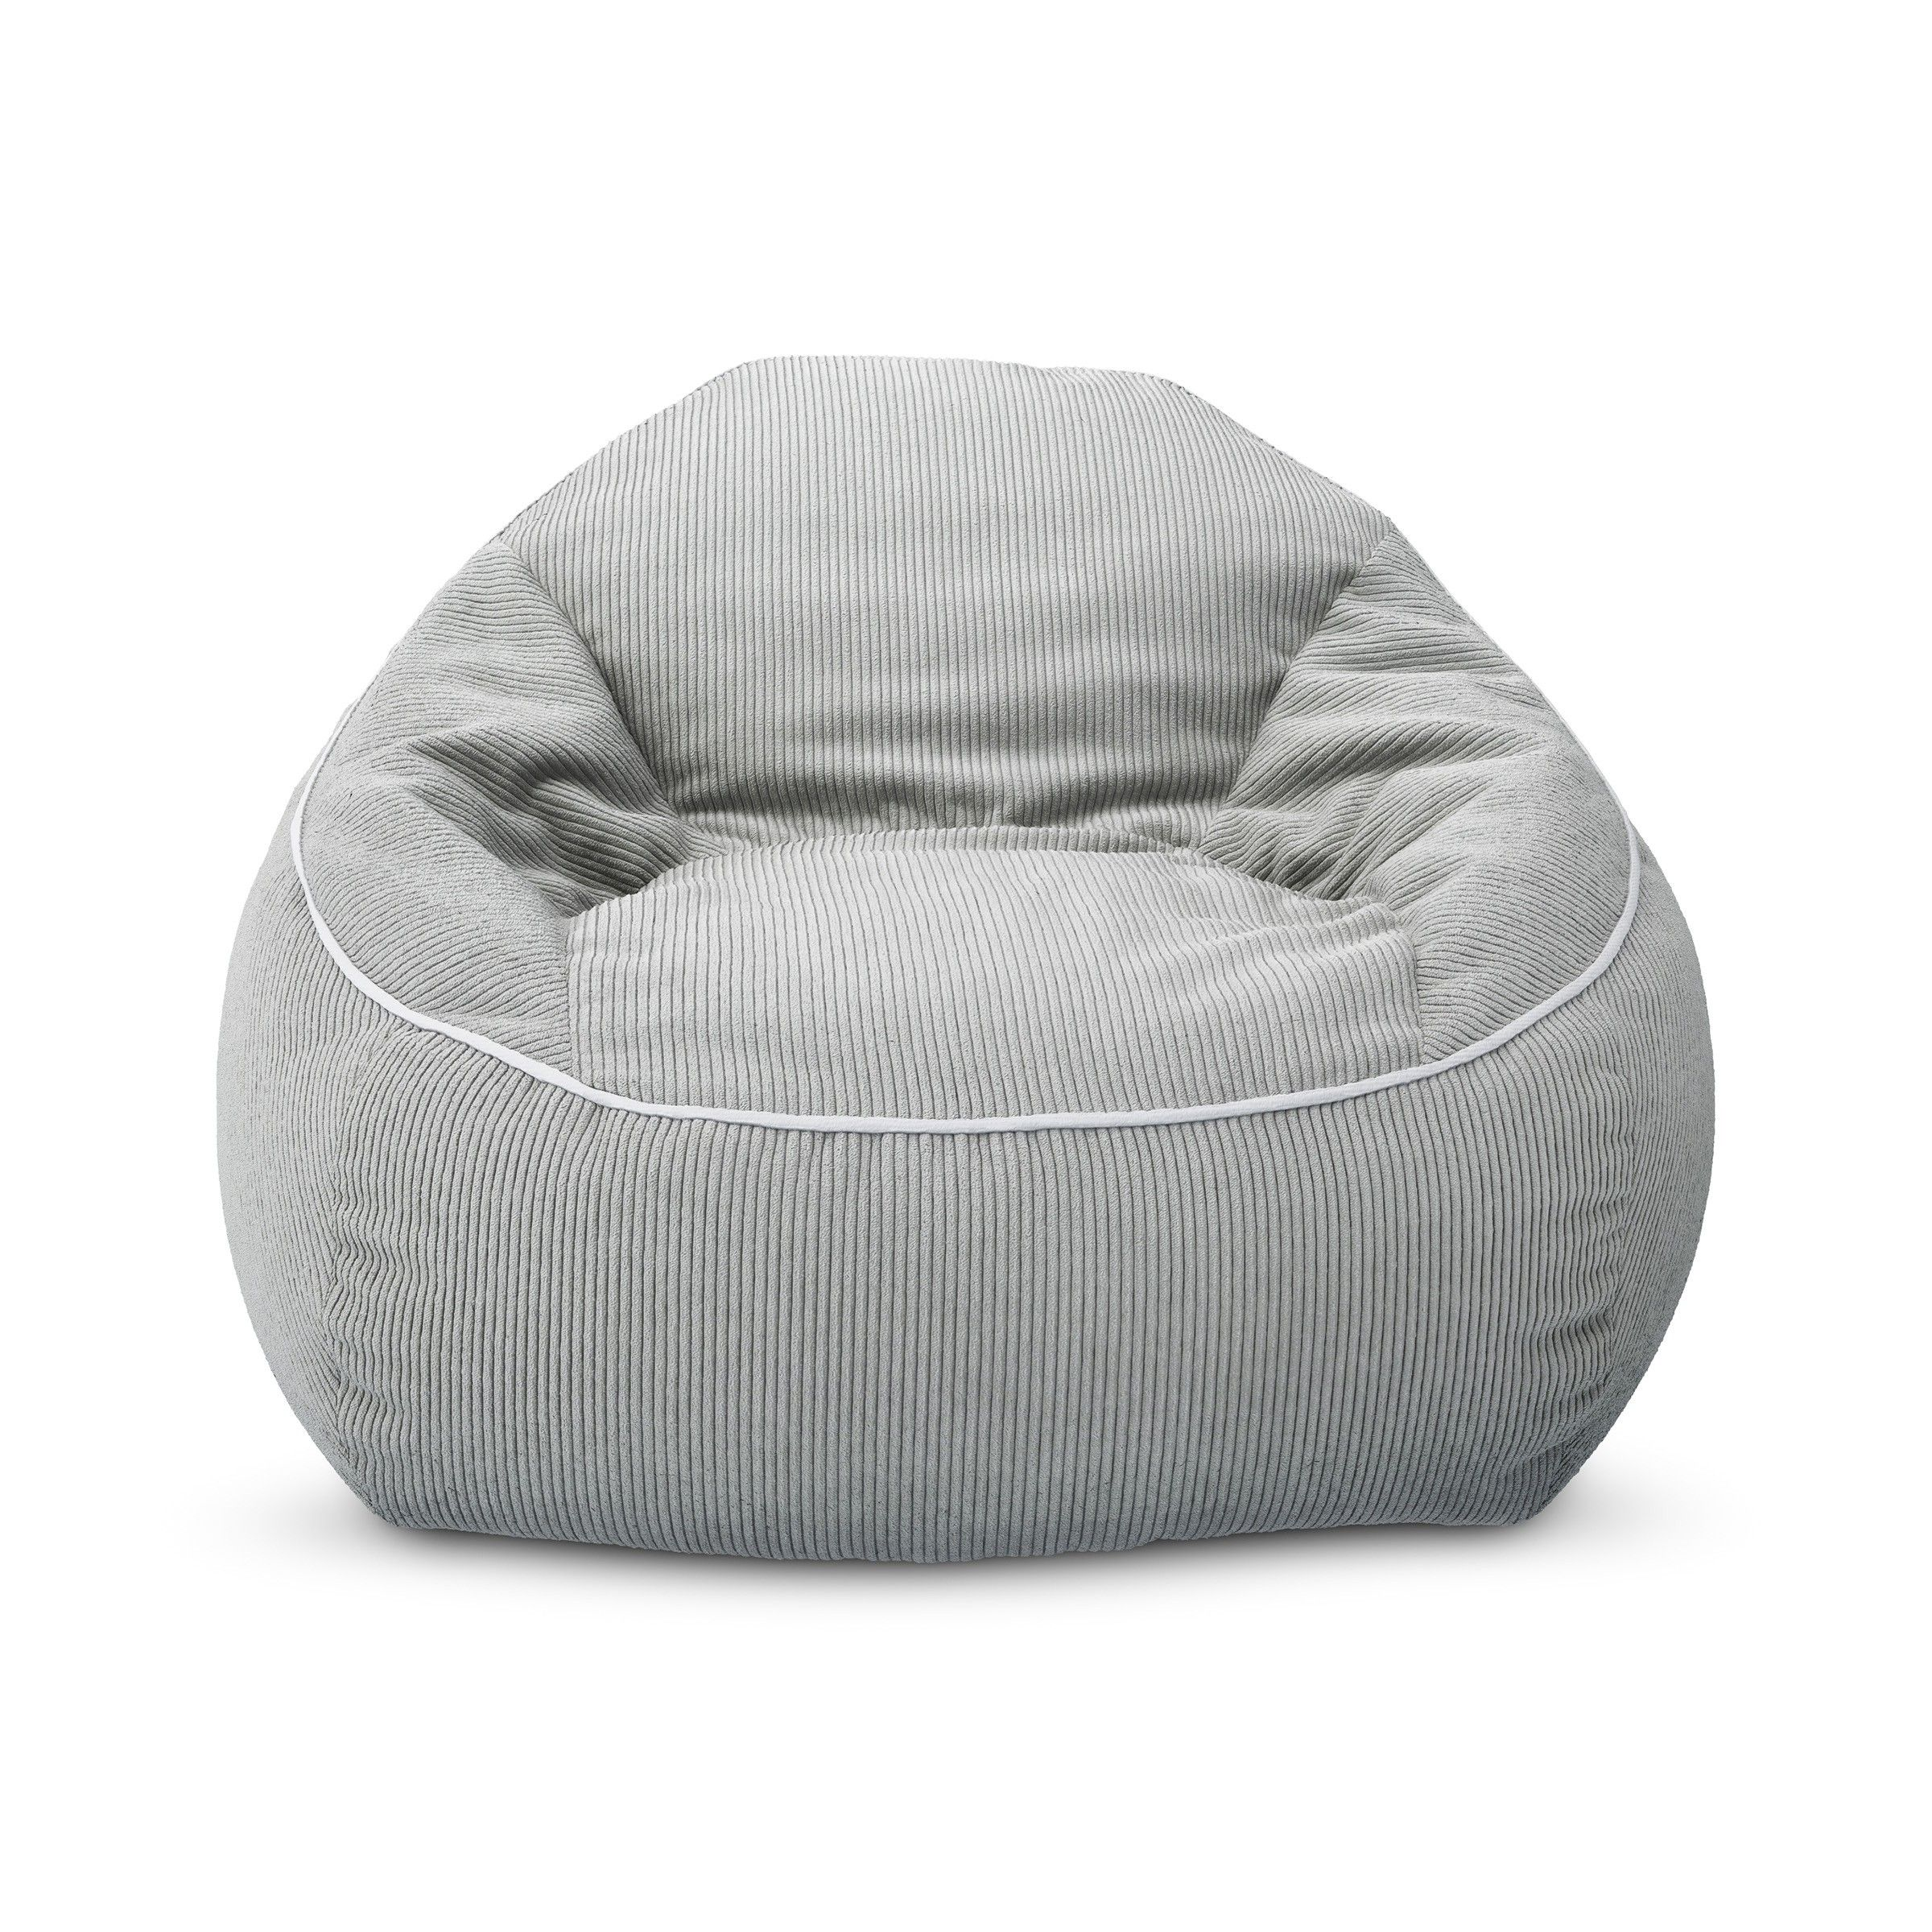 Add A Little Kid Friendly Seating To Your Childs Bedroom Or Playroom With The XL Kids Bean Bag ChairsChildrens